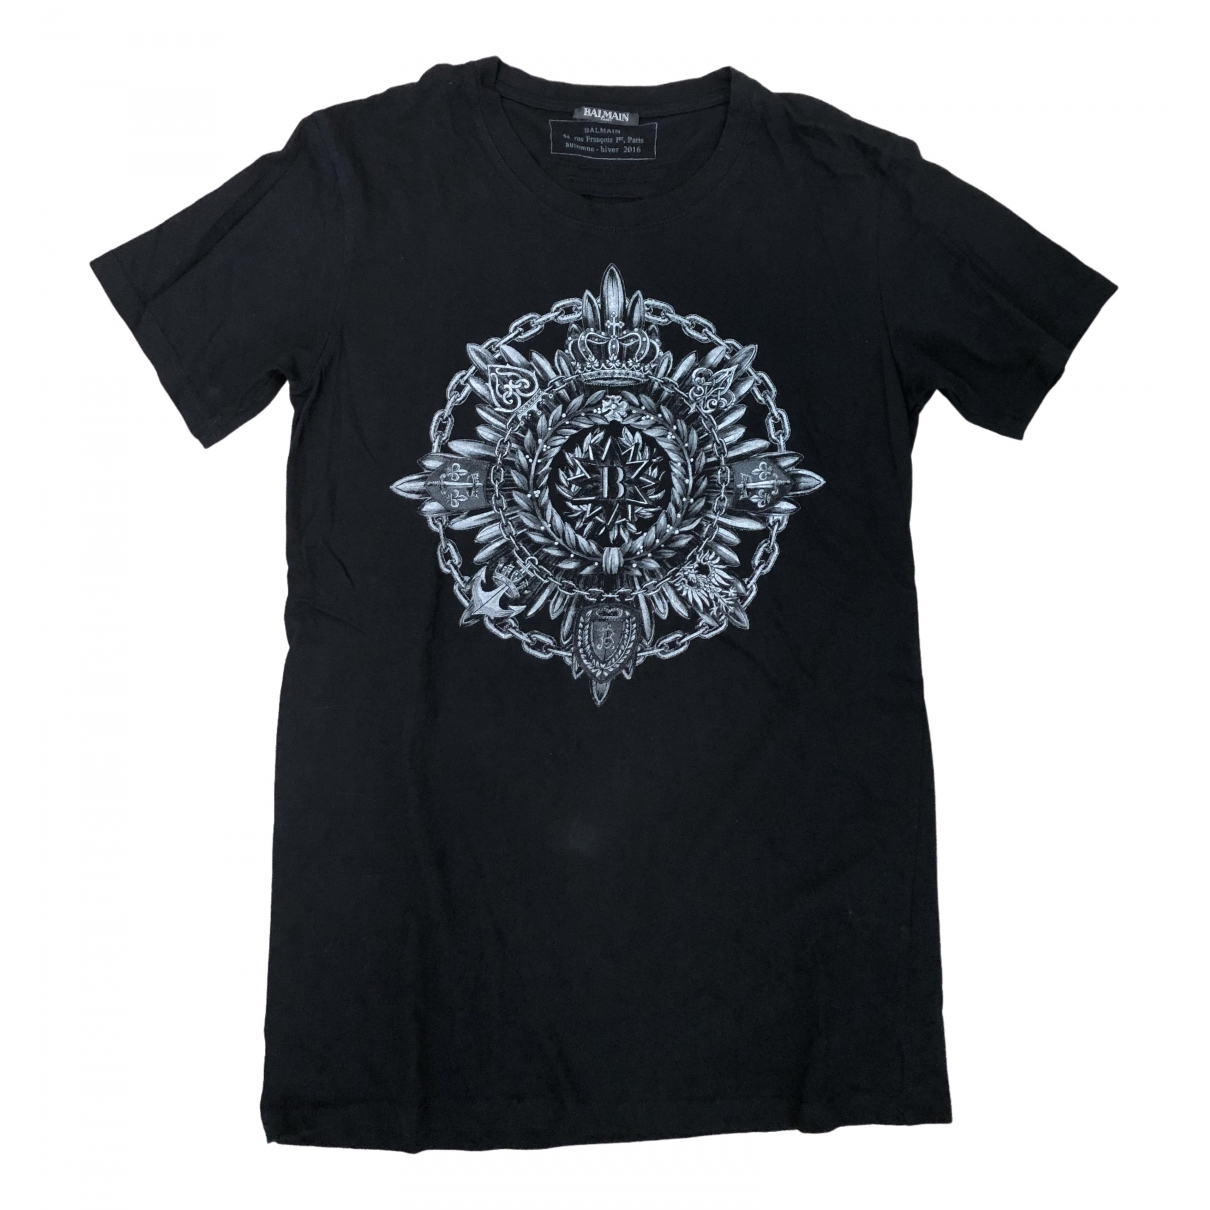 Balmain \N Black Cotton T-shirts for Men M International